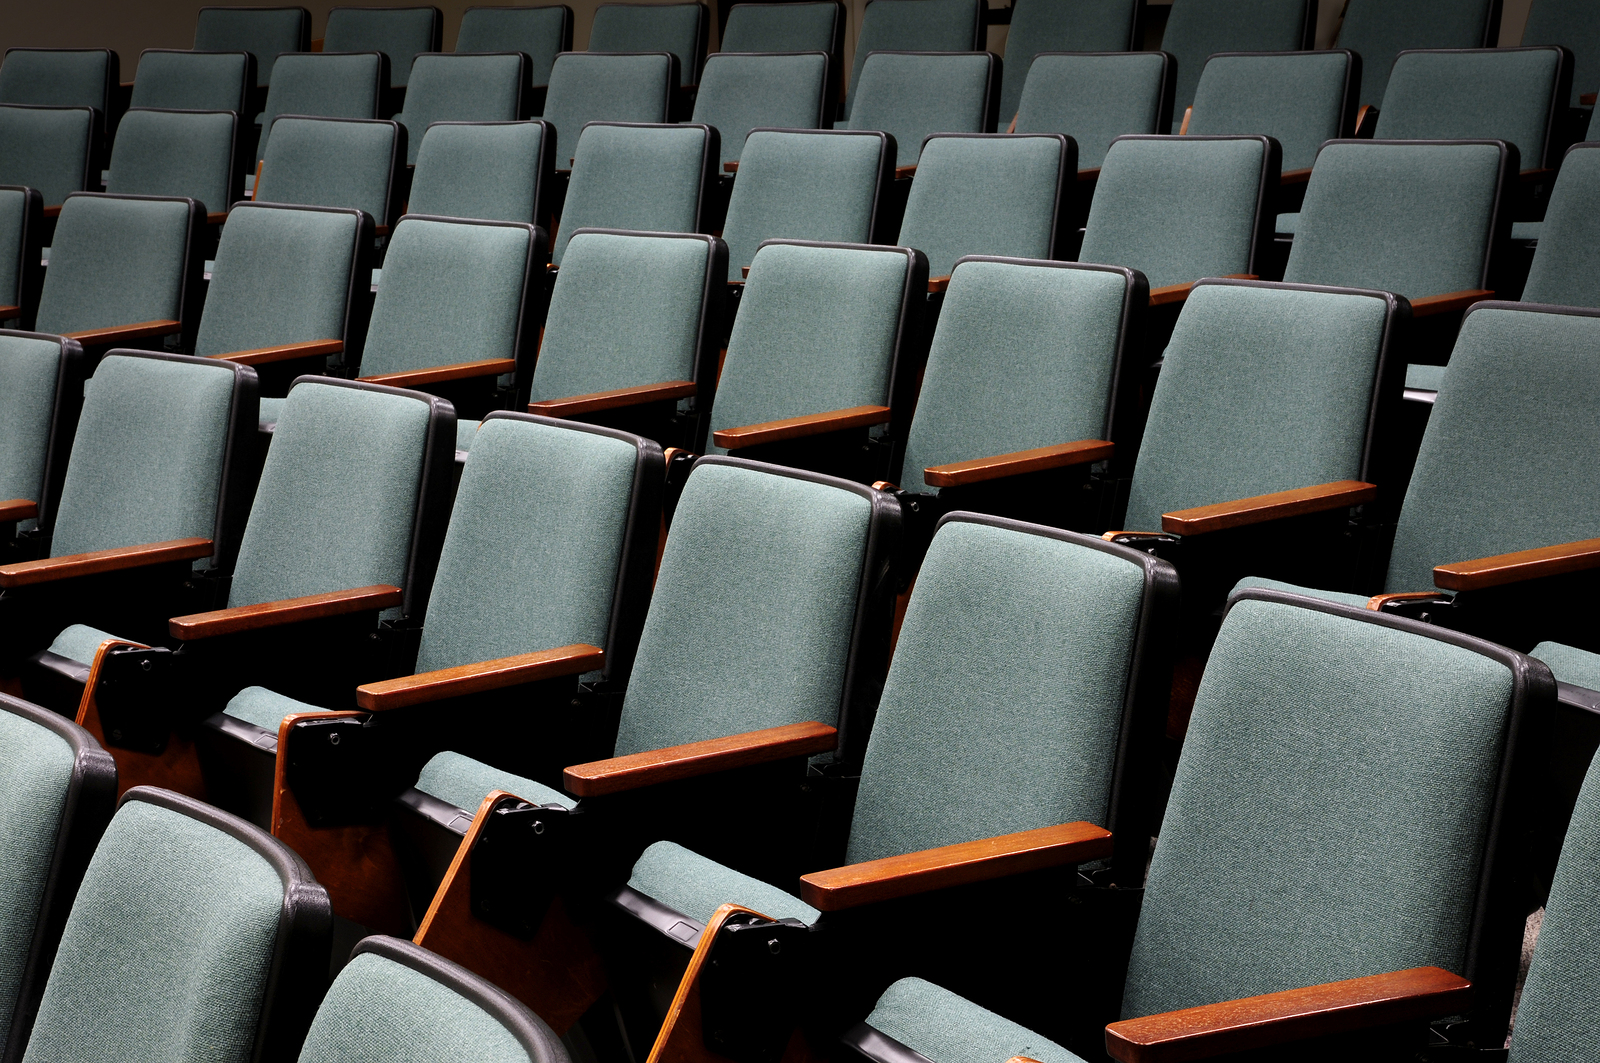 bigstock-Empty-Auditorium-Seats-5203800.jpg